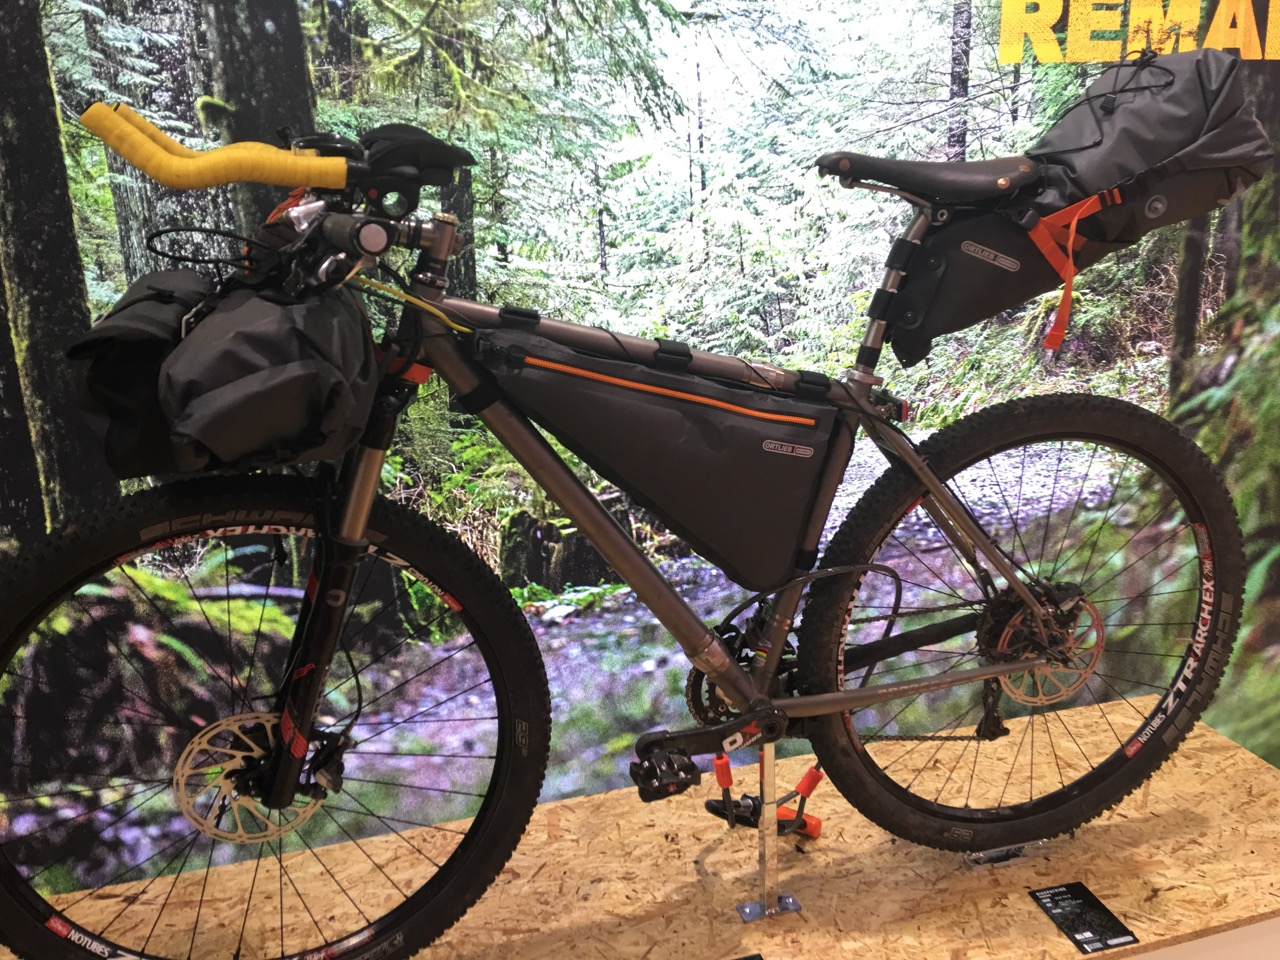 Ortlieb Bikepacking Gear